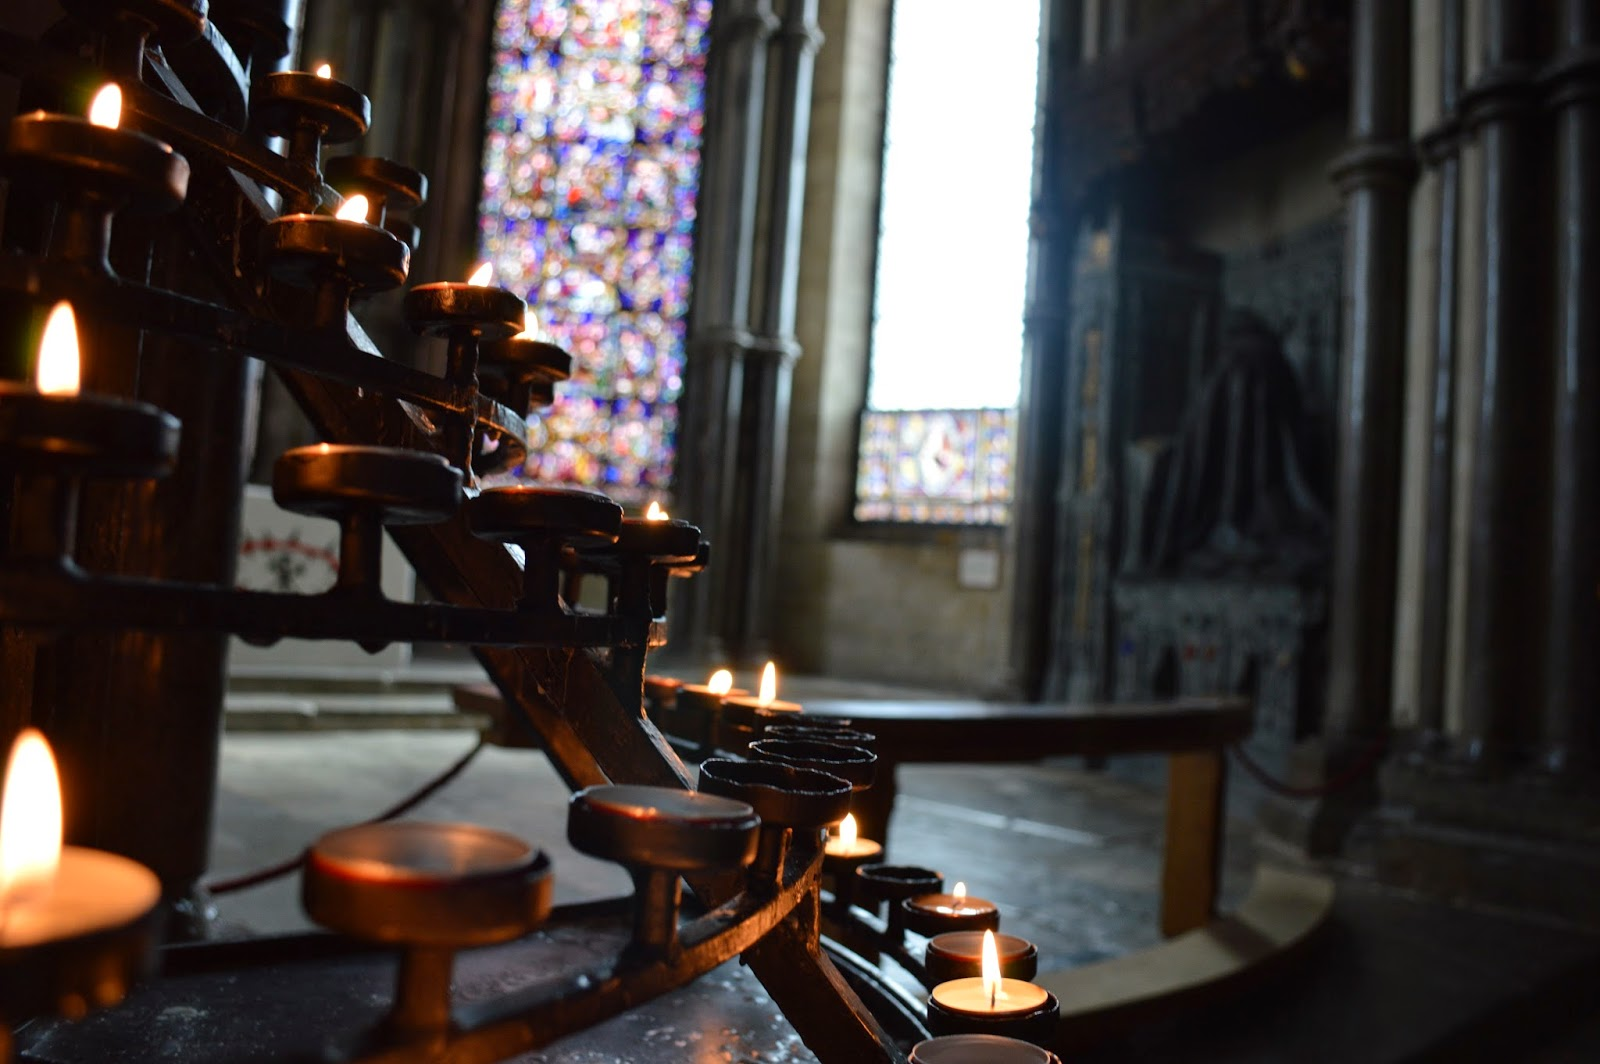 royal burial, Canterbury Cathedral, medieval, church, visit, Thomas Becket, inside, architecture, history, historical, old, large, impressive, Henry II, pilgrimage, arch, pillars, photo, photograph, day trip,  UK, England, candles, stained glass, prayer, light, burning,